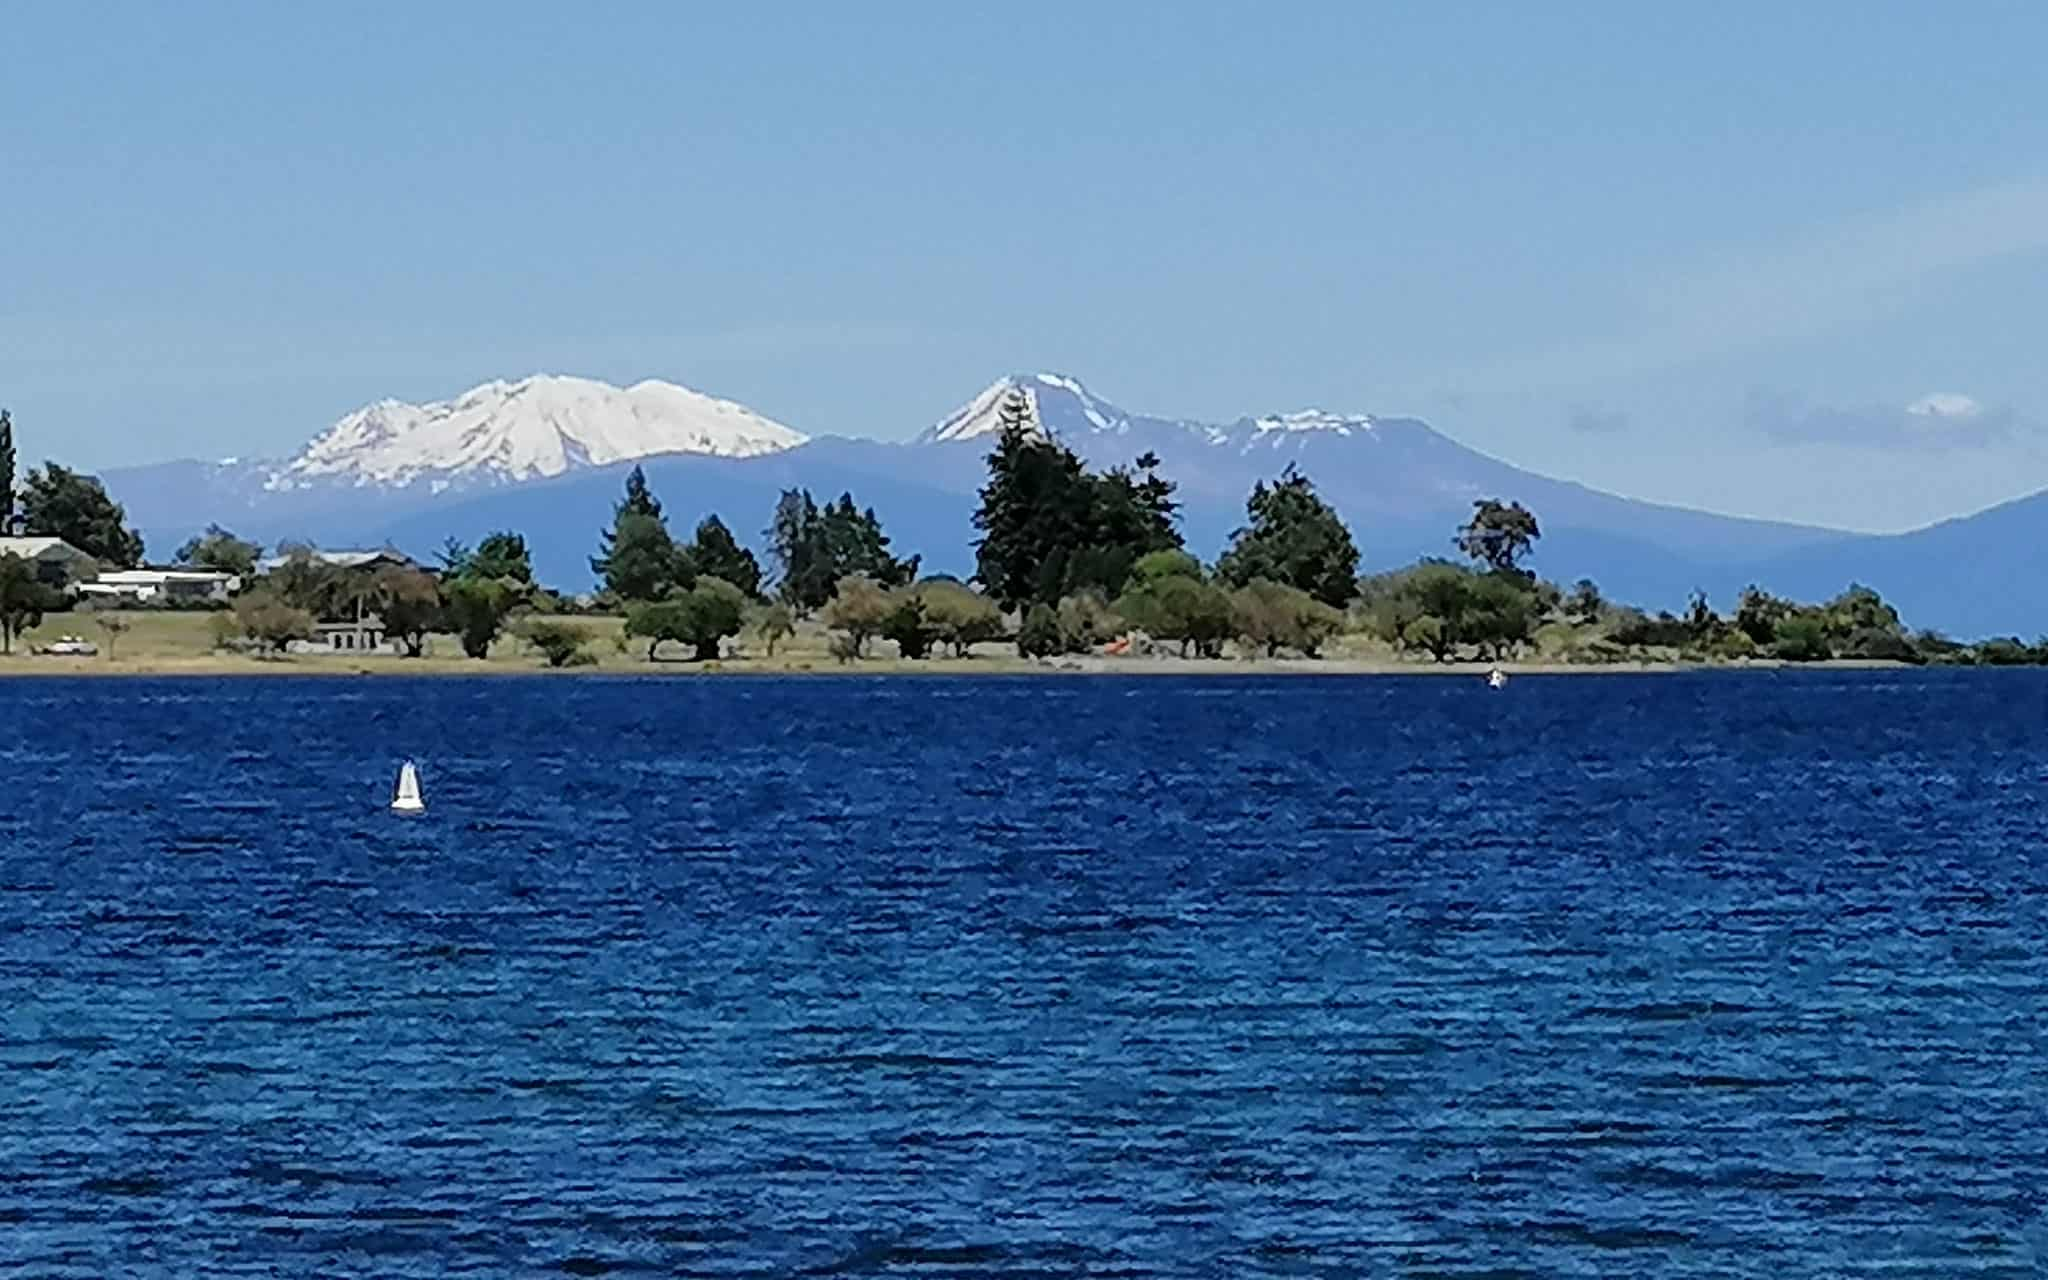 Stay-in-Taupo-Accommodation-Bed-and-Breakfast-in-Taupo-Waikato-New-Zealand-13